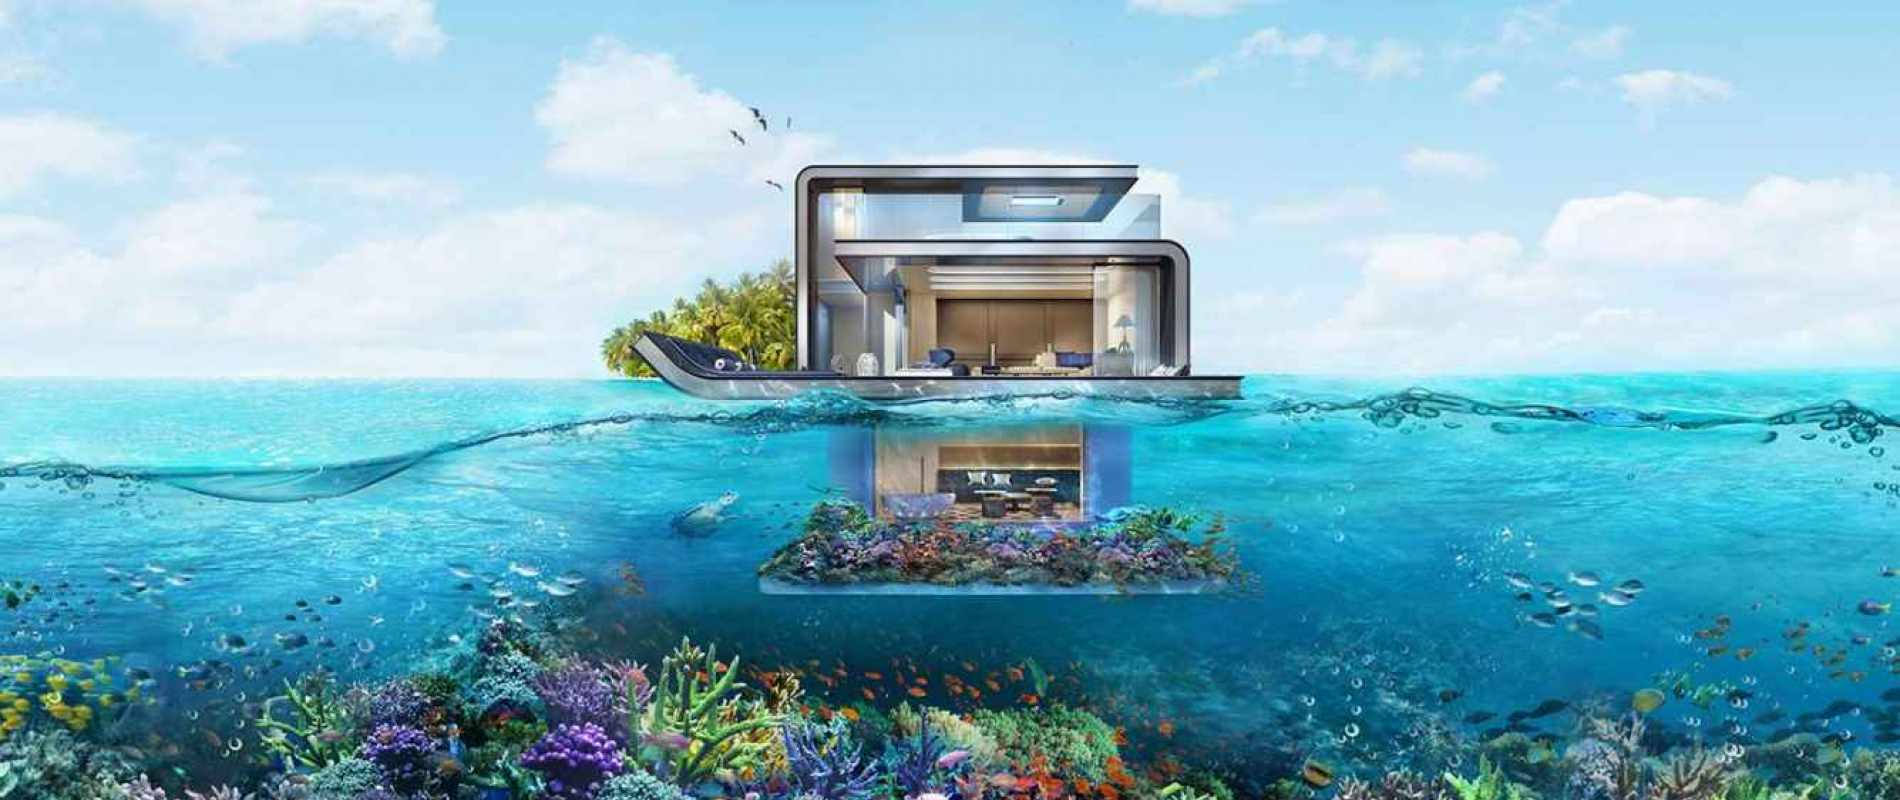 Luxury Property Dubai  - Property for sale in Floating Seahorse The World Islands